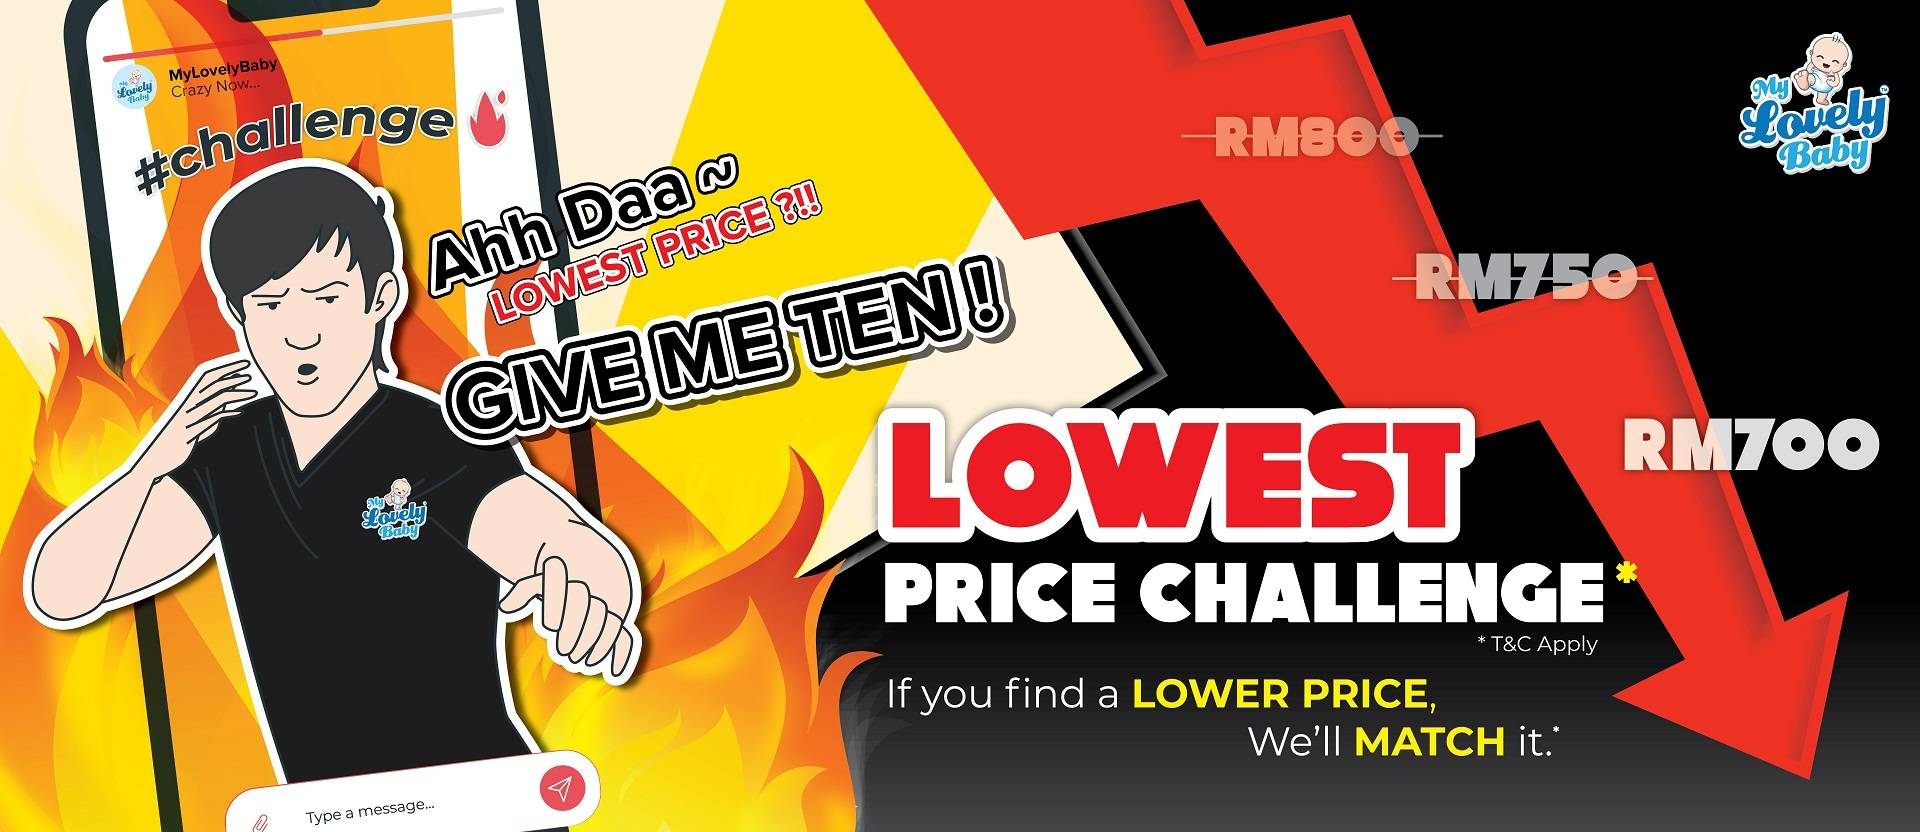 Lowest Price Challenge